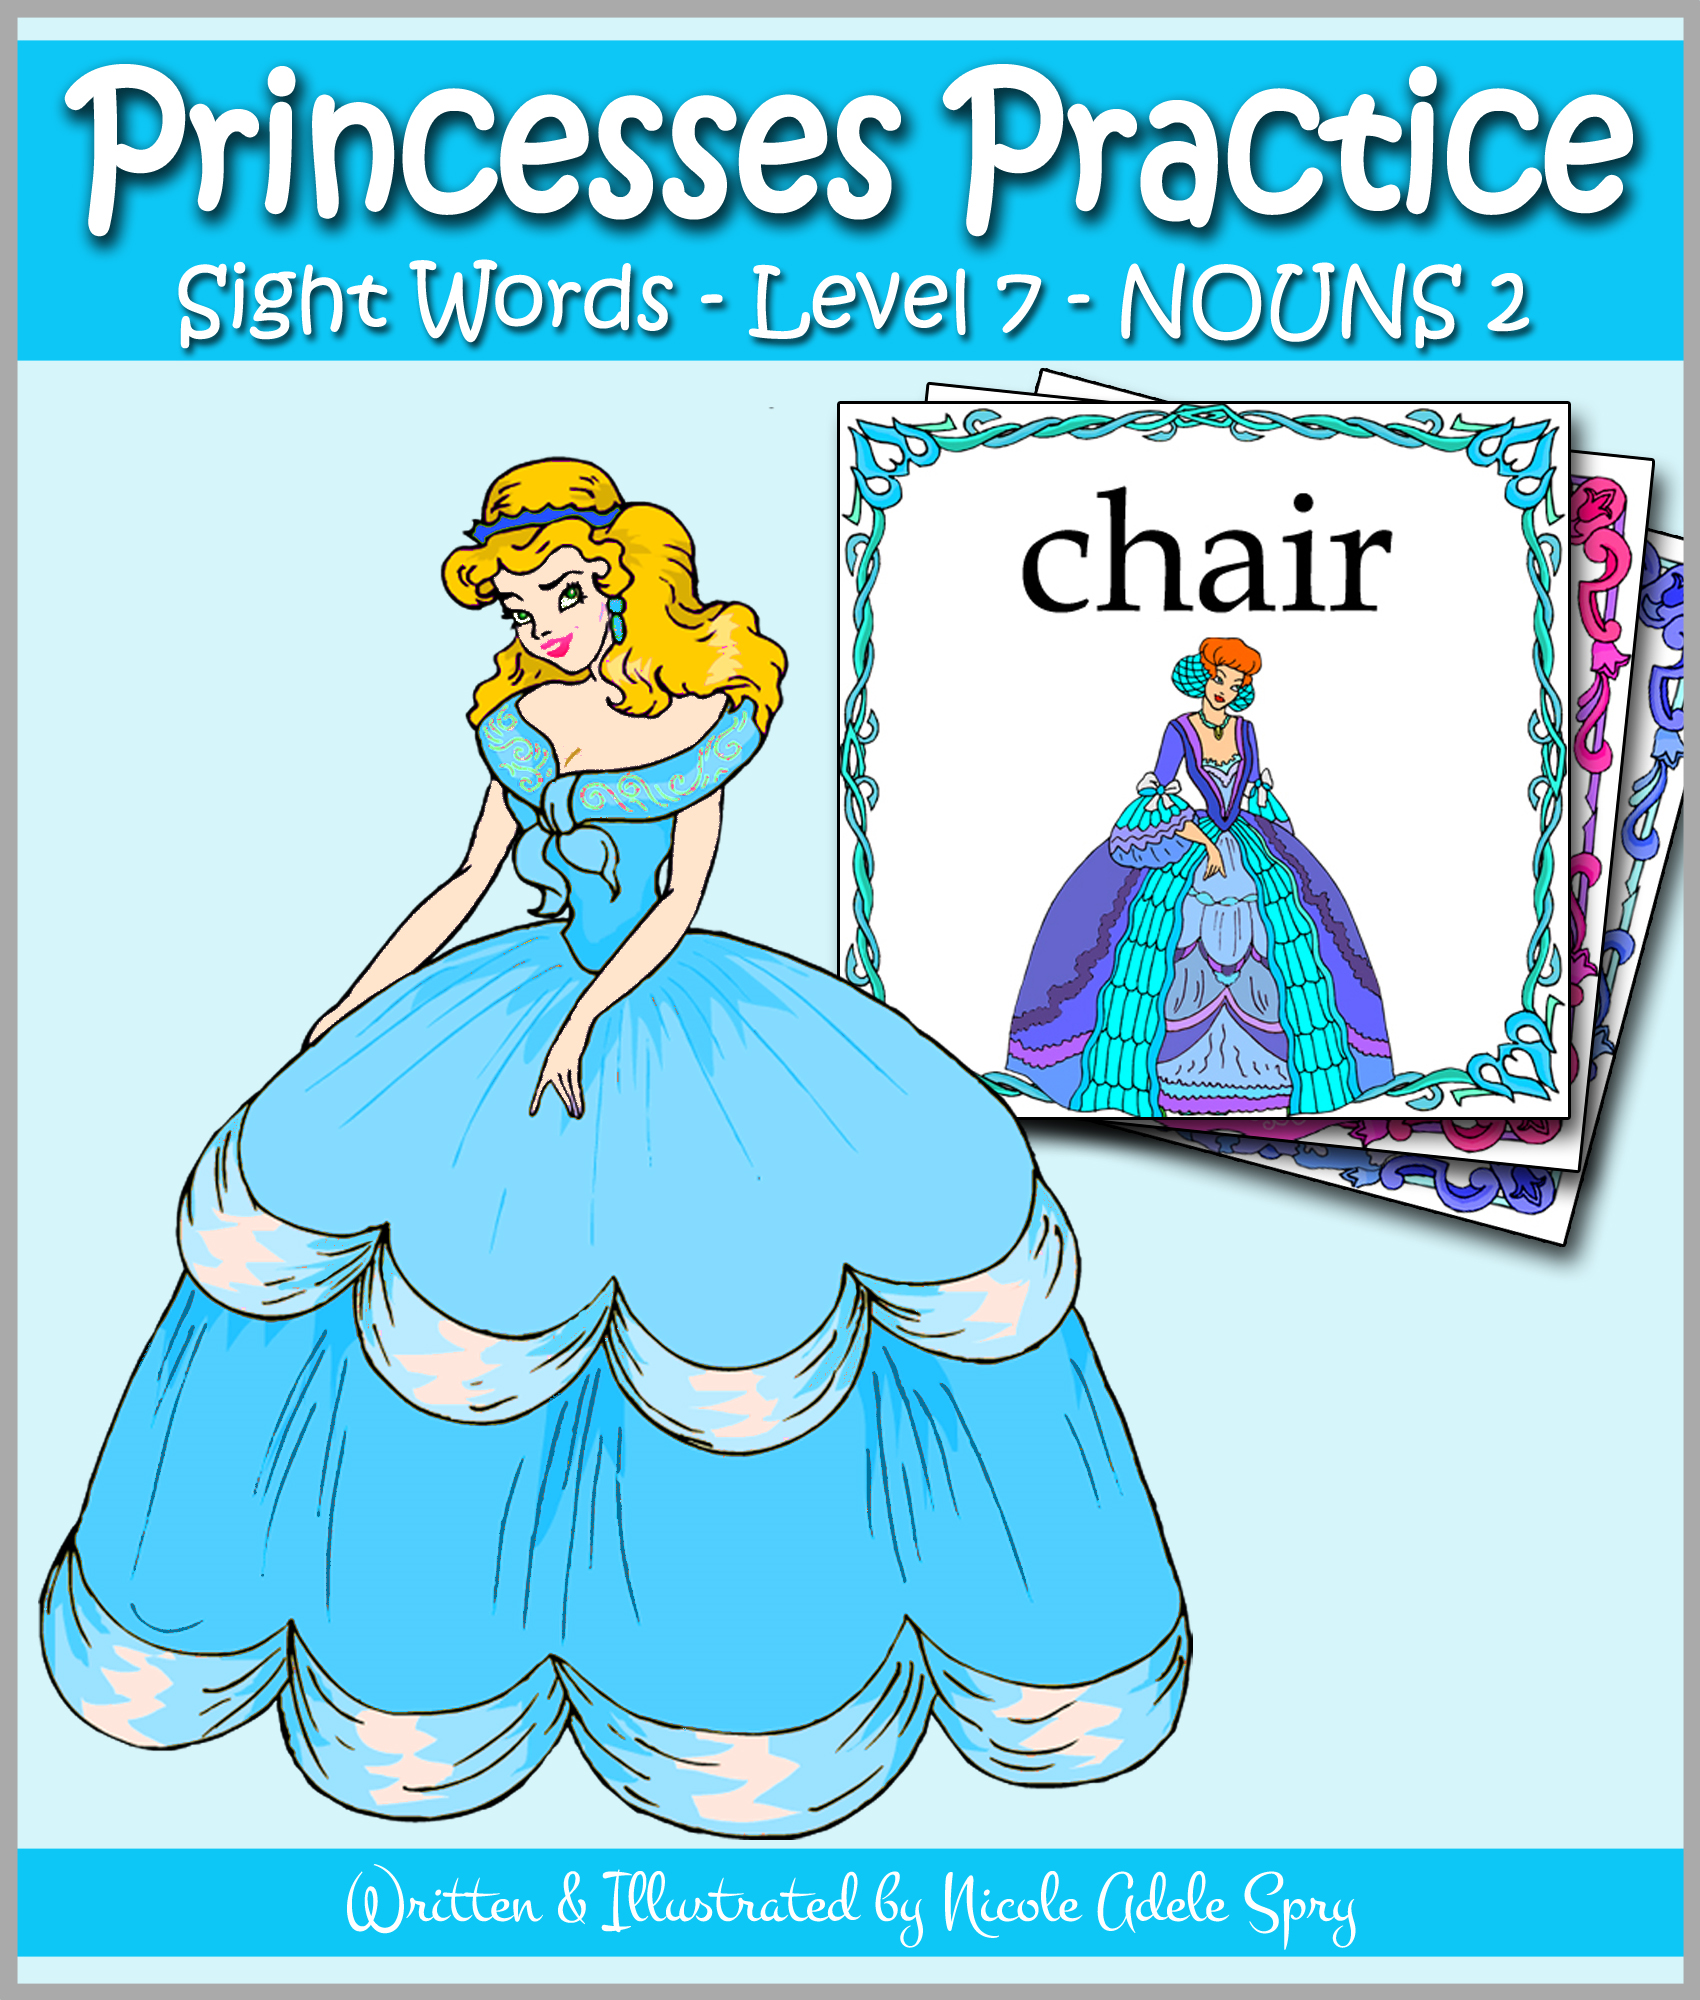 Princesses Practice Sight Words  - Level 7: NOUNS 2